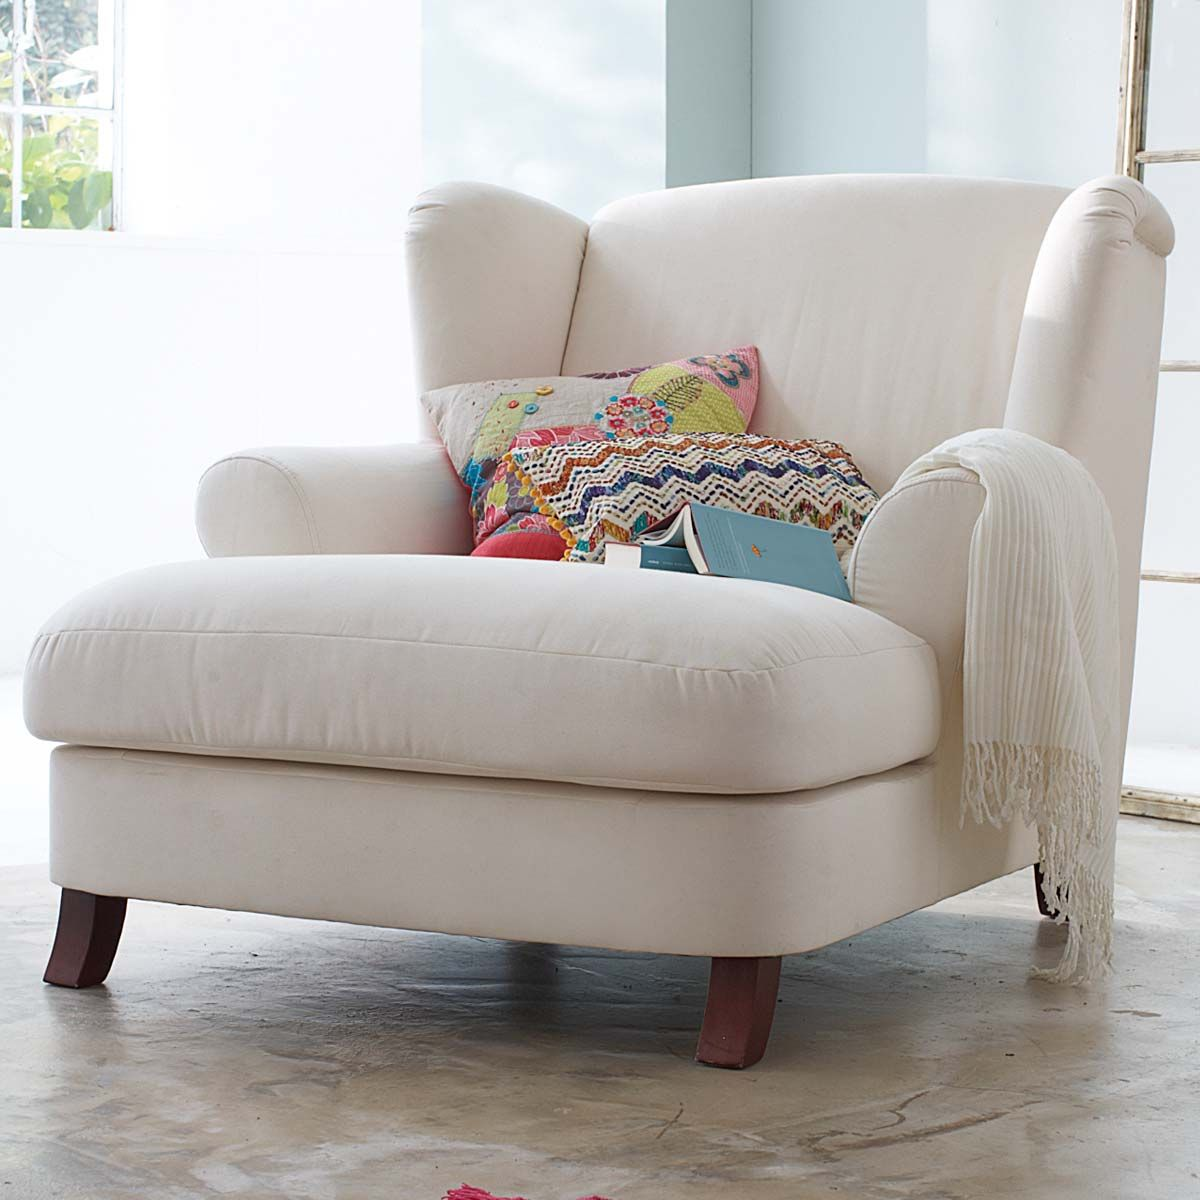 We Have This Chair At Home And Everyone Loves It Comfy Reading Chair Big Comfy Chair Living Room Chairs